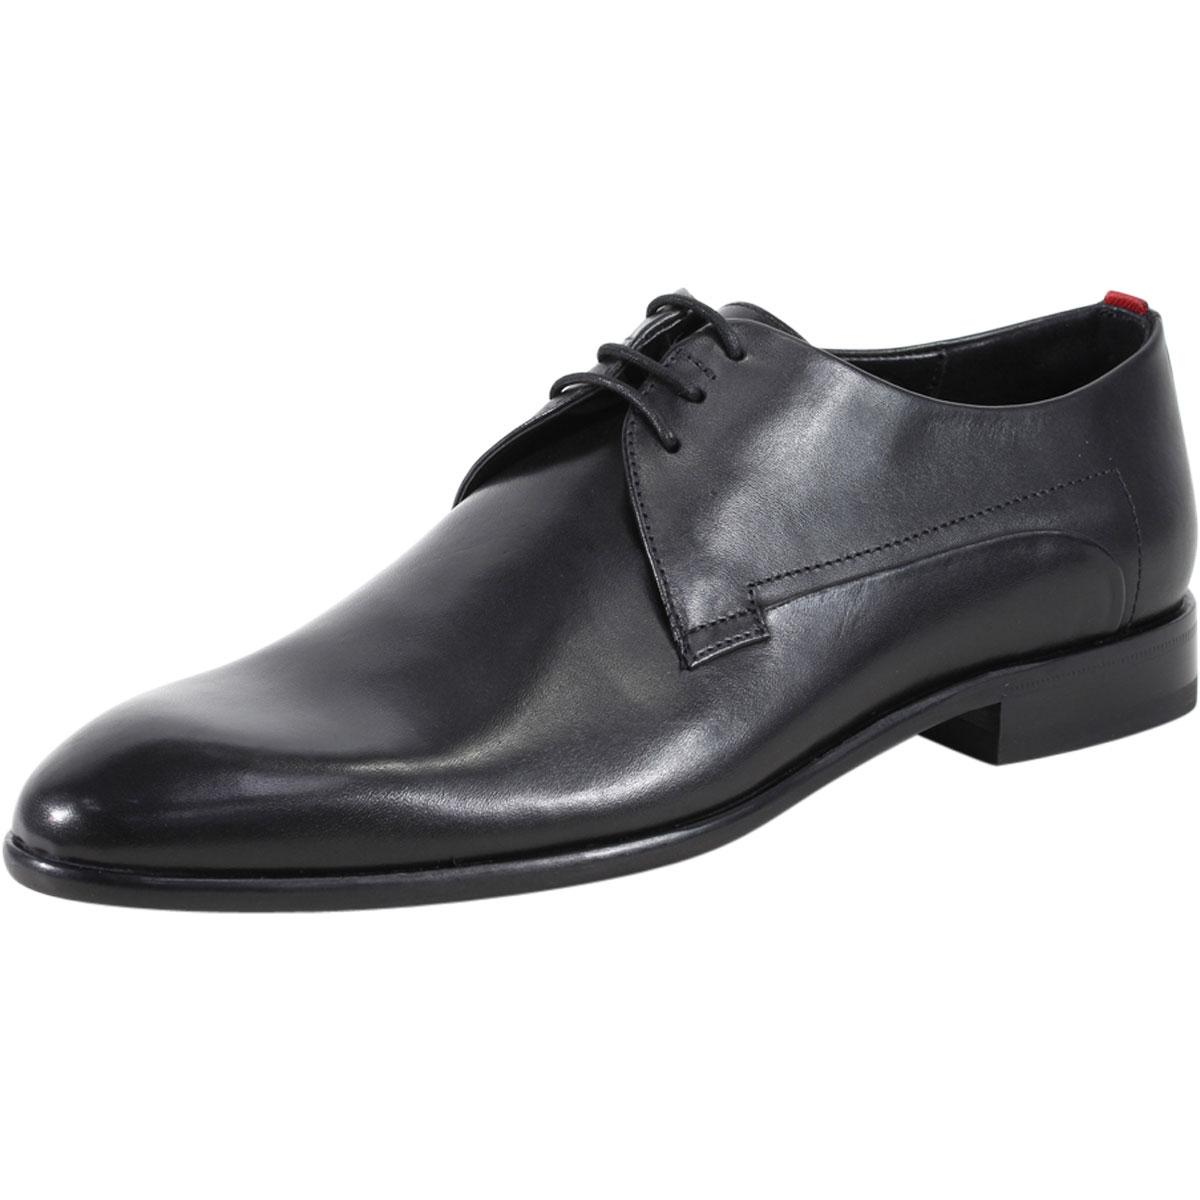 Hugo Boss Men's Appeal Leather Derby Oxfords Shoes